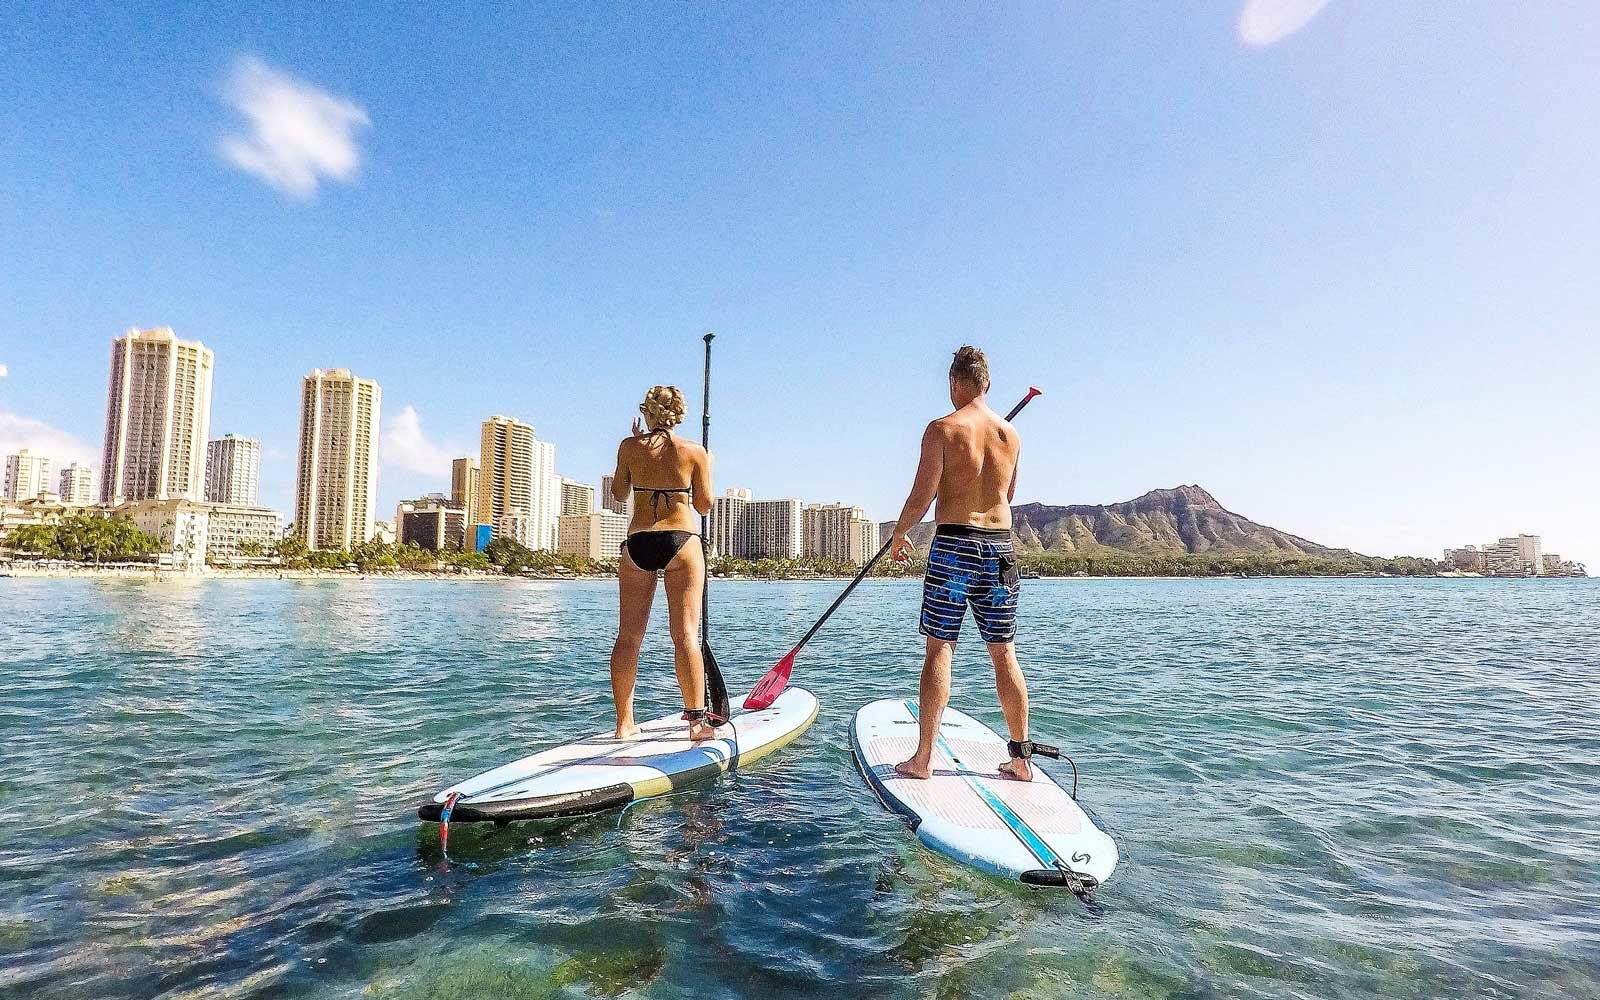 Paddle boarding with the Waikiki Parc Hotel